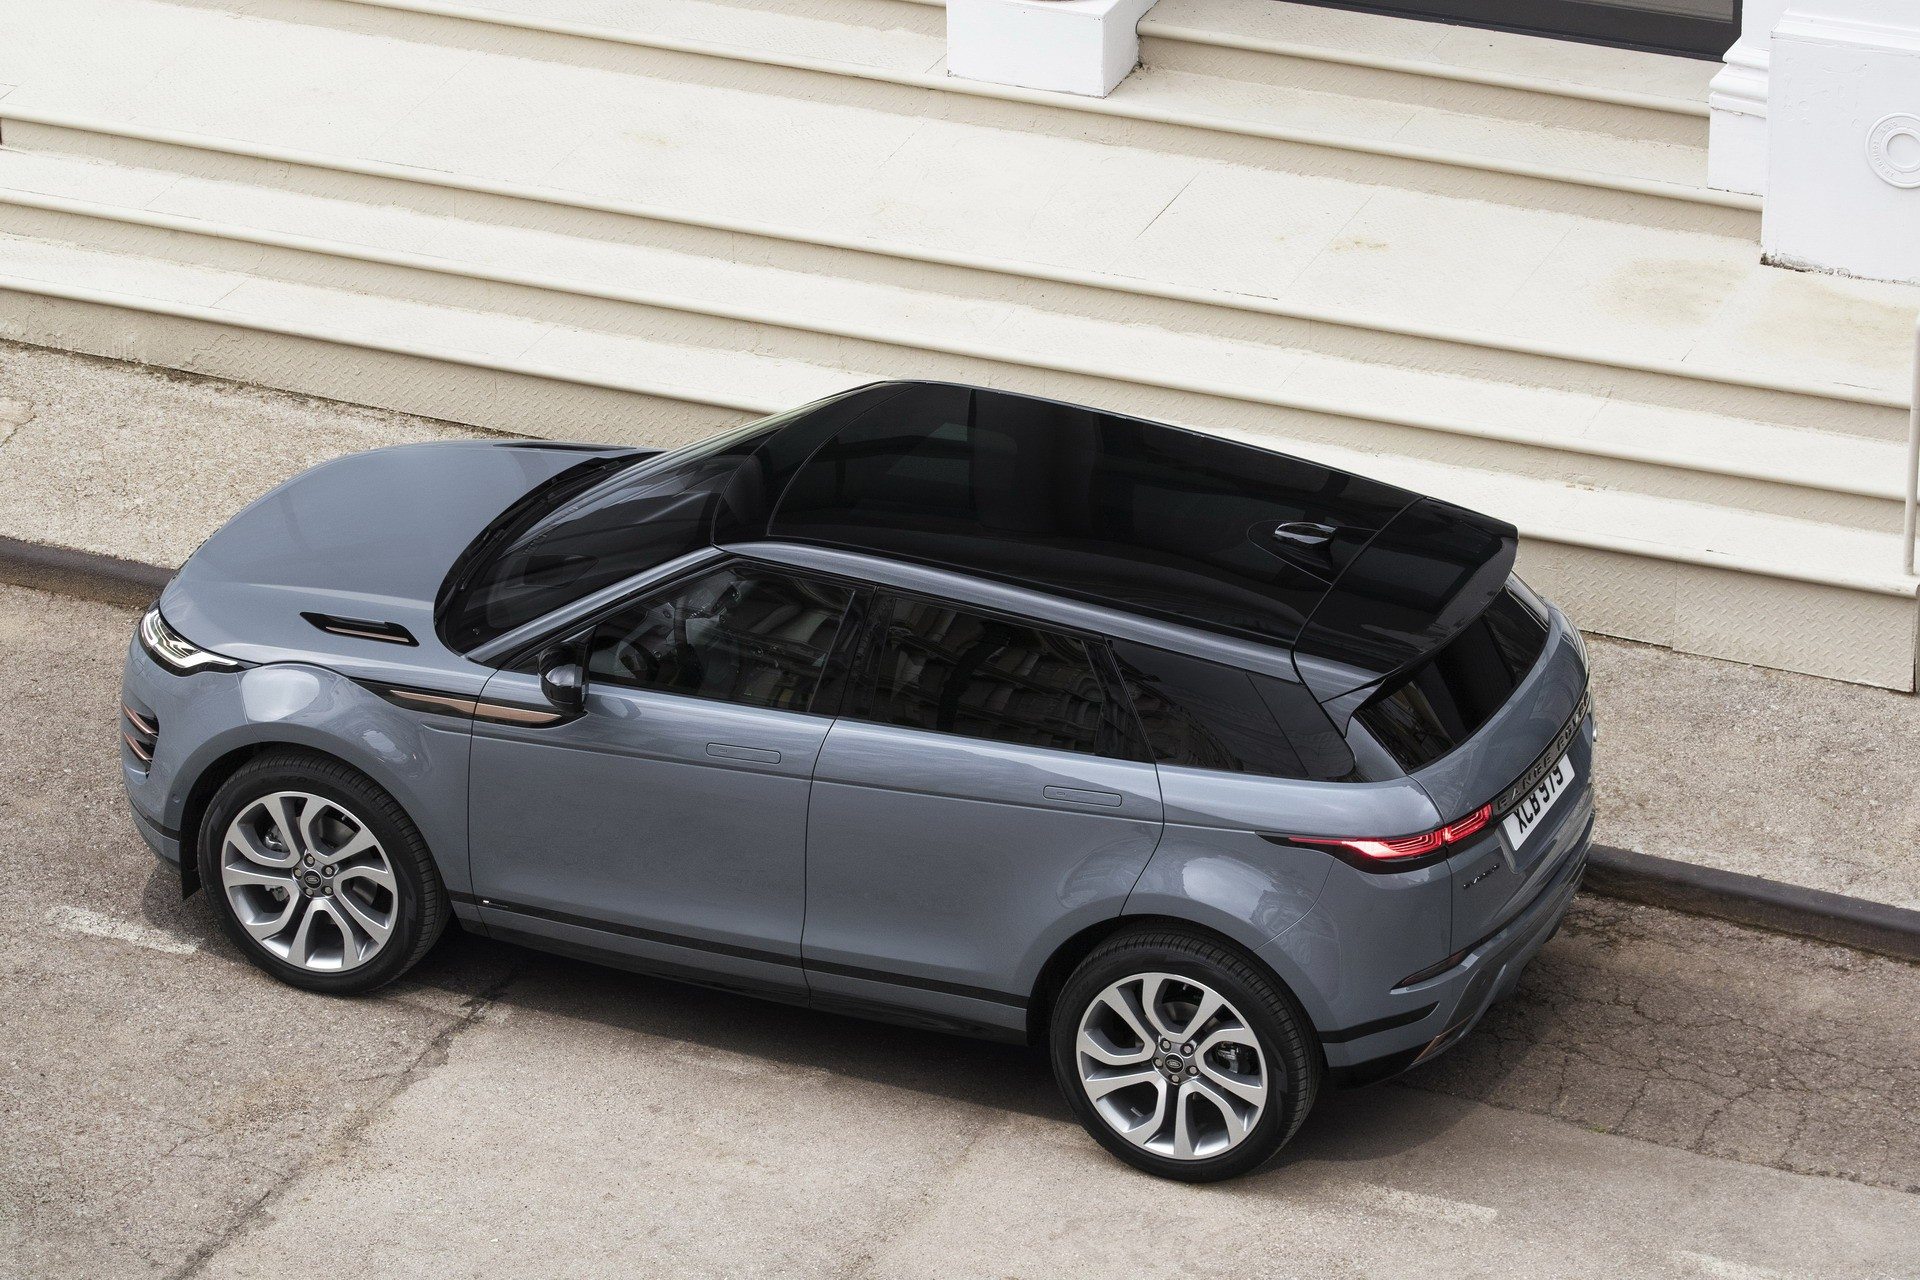 Land Rover Vs Range Rover Photo Comparison 2020 Range Rover Evoque Vs 2015 Range